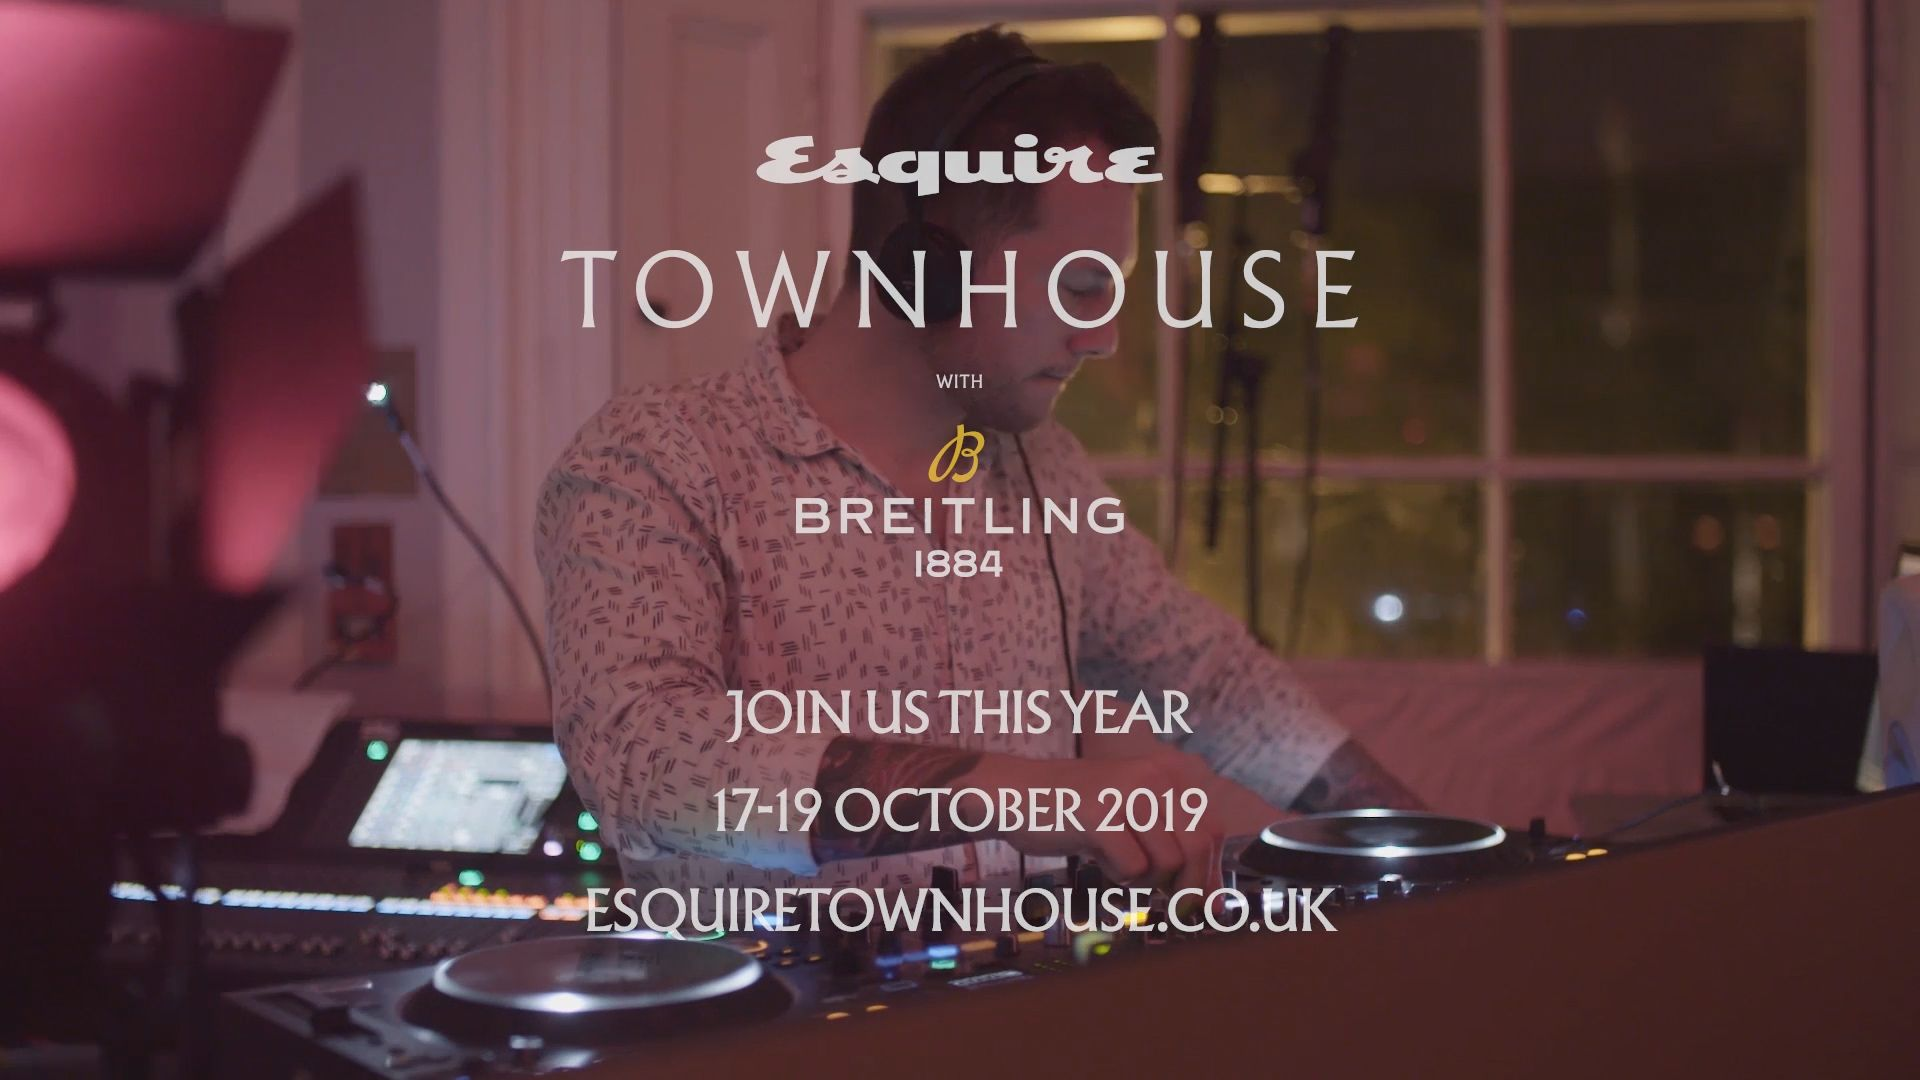 Edgar Wright, Asif Kapadia & Tracey Thorn Announced For Esquire Townhouse 2019